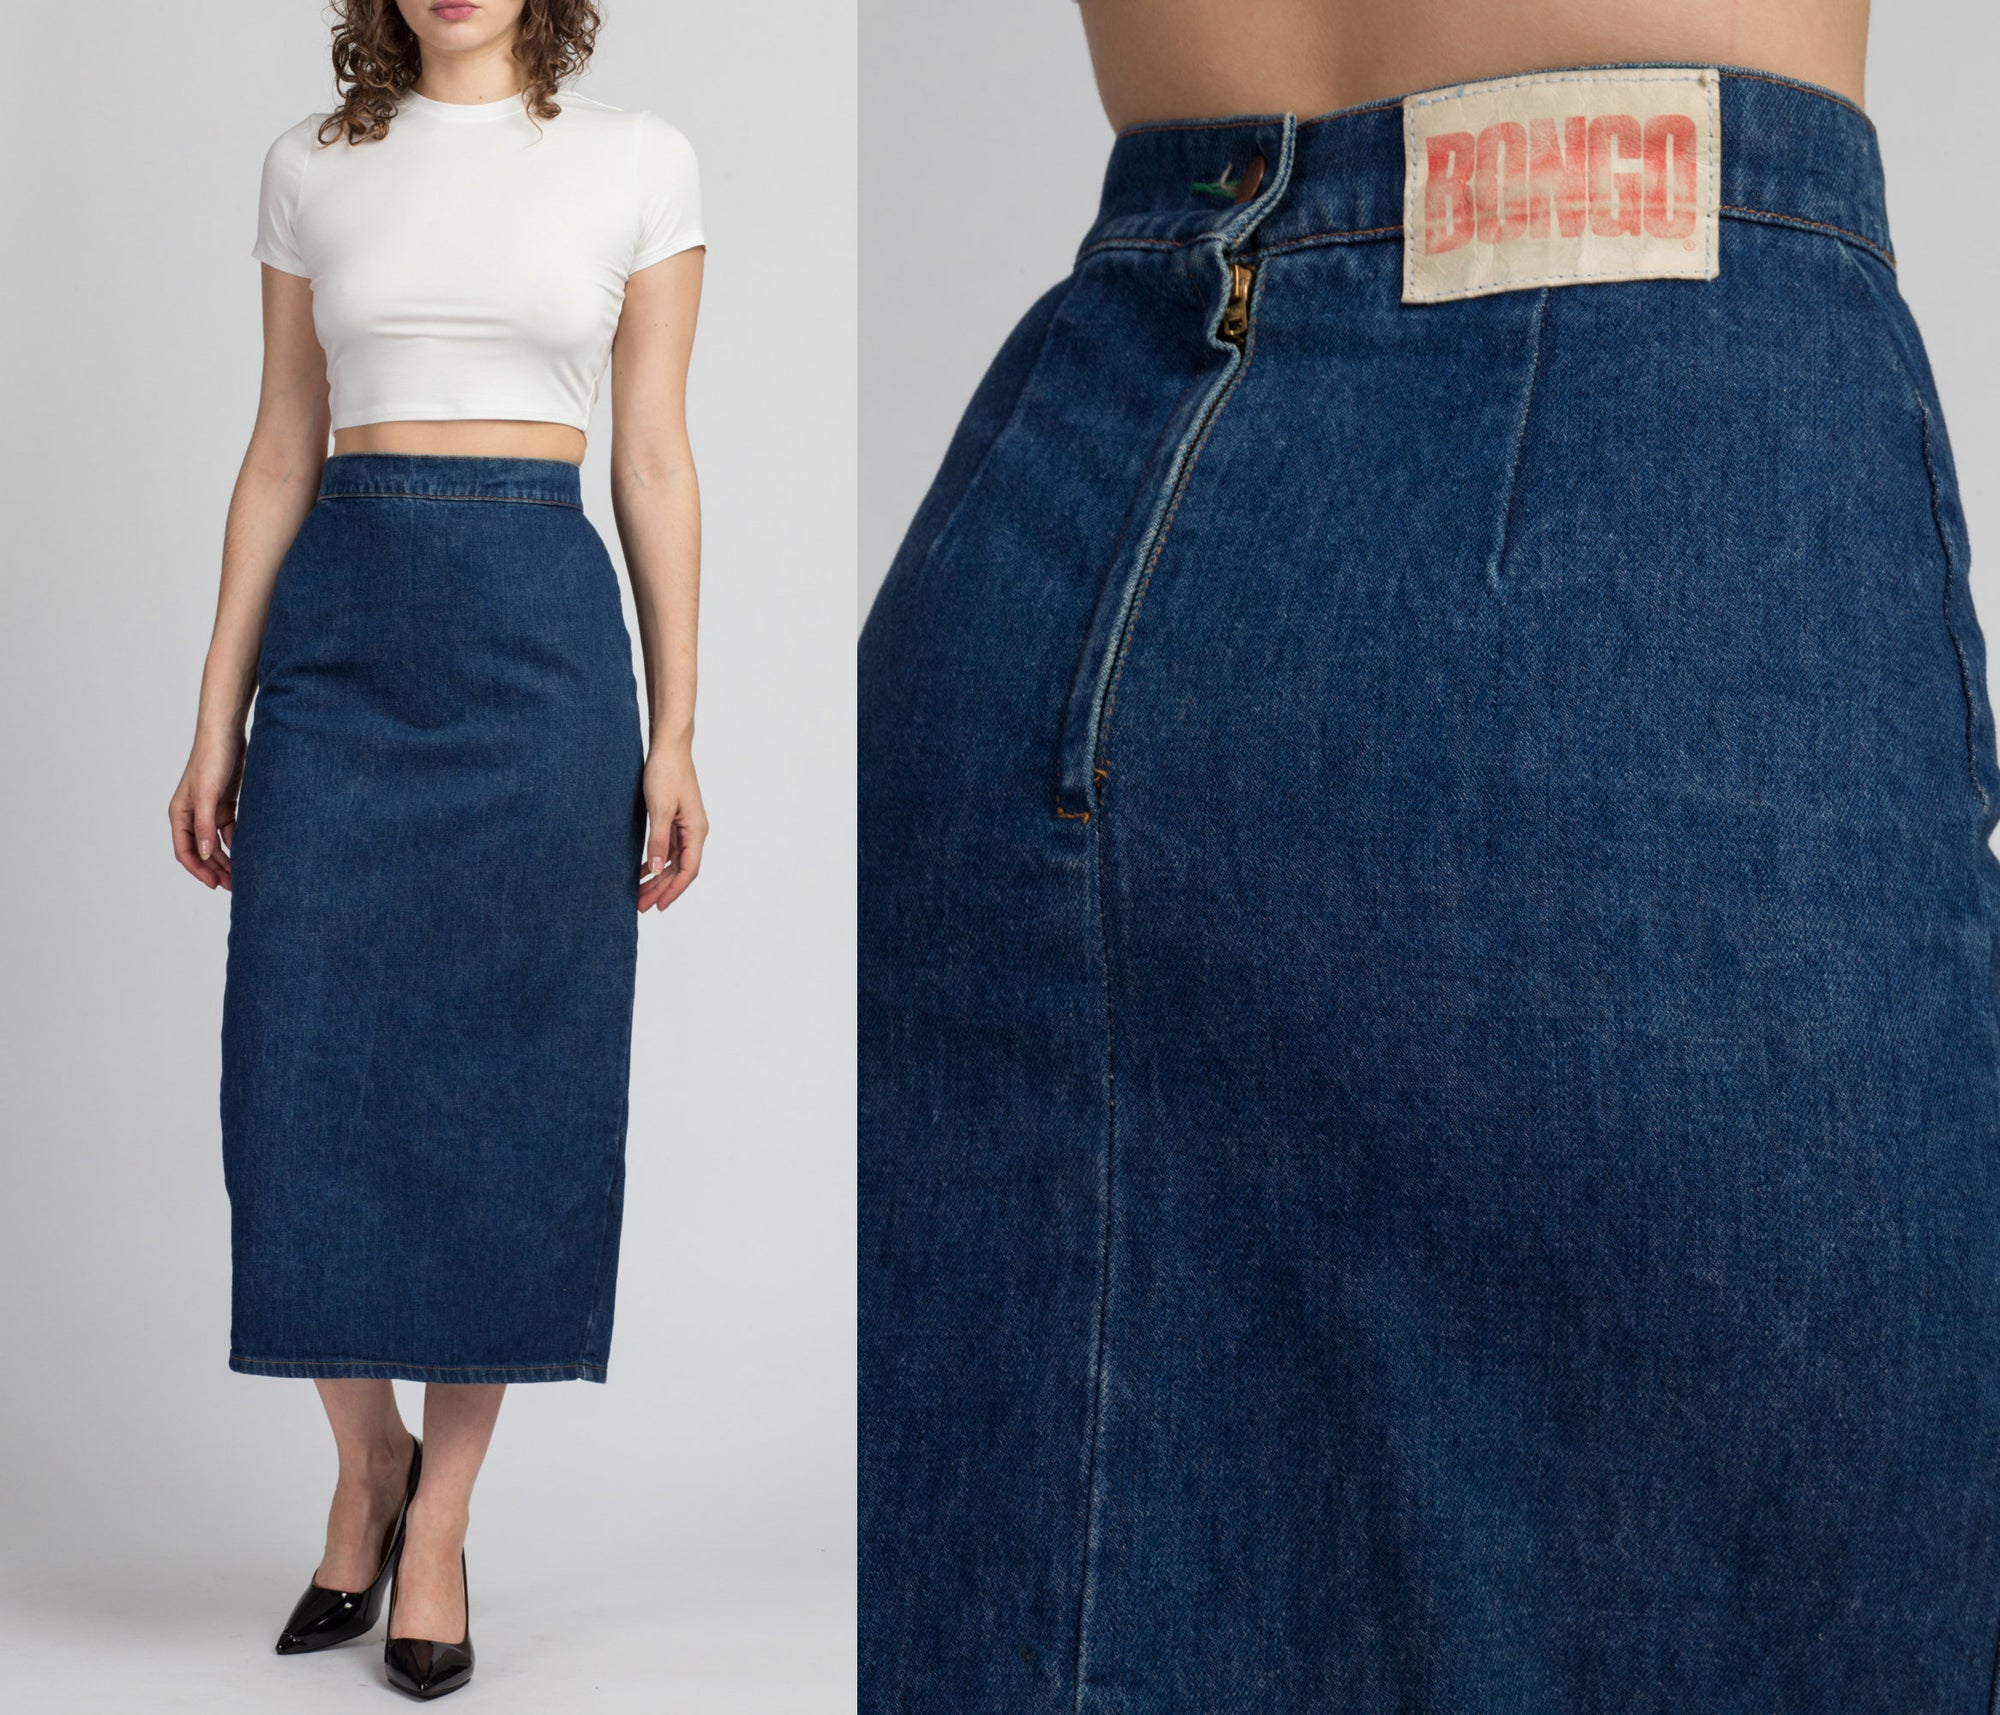 90s Bongo Denim High Waisted Midi Skirt - Small